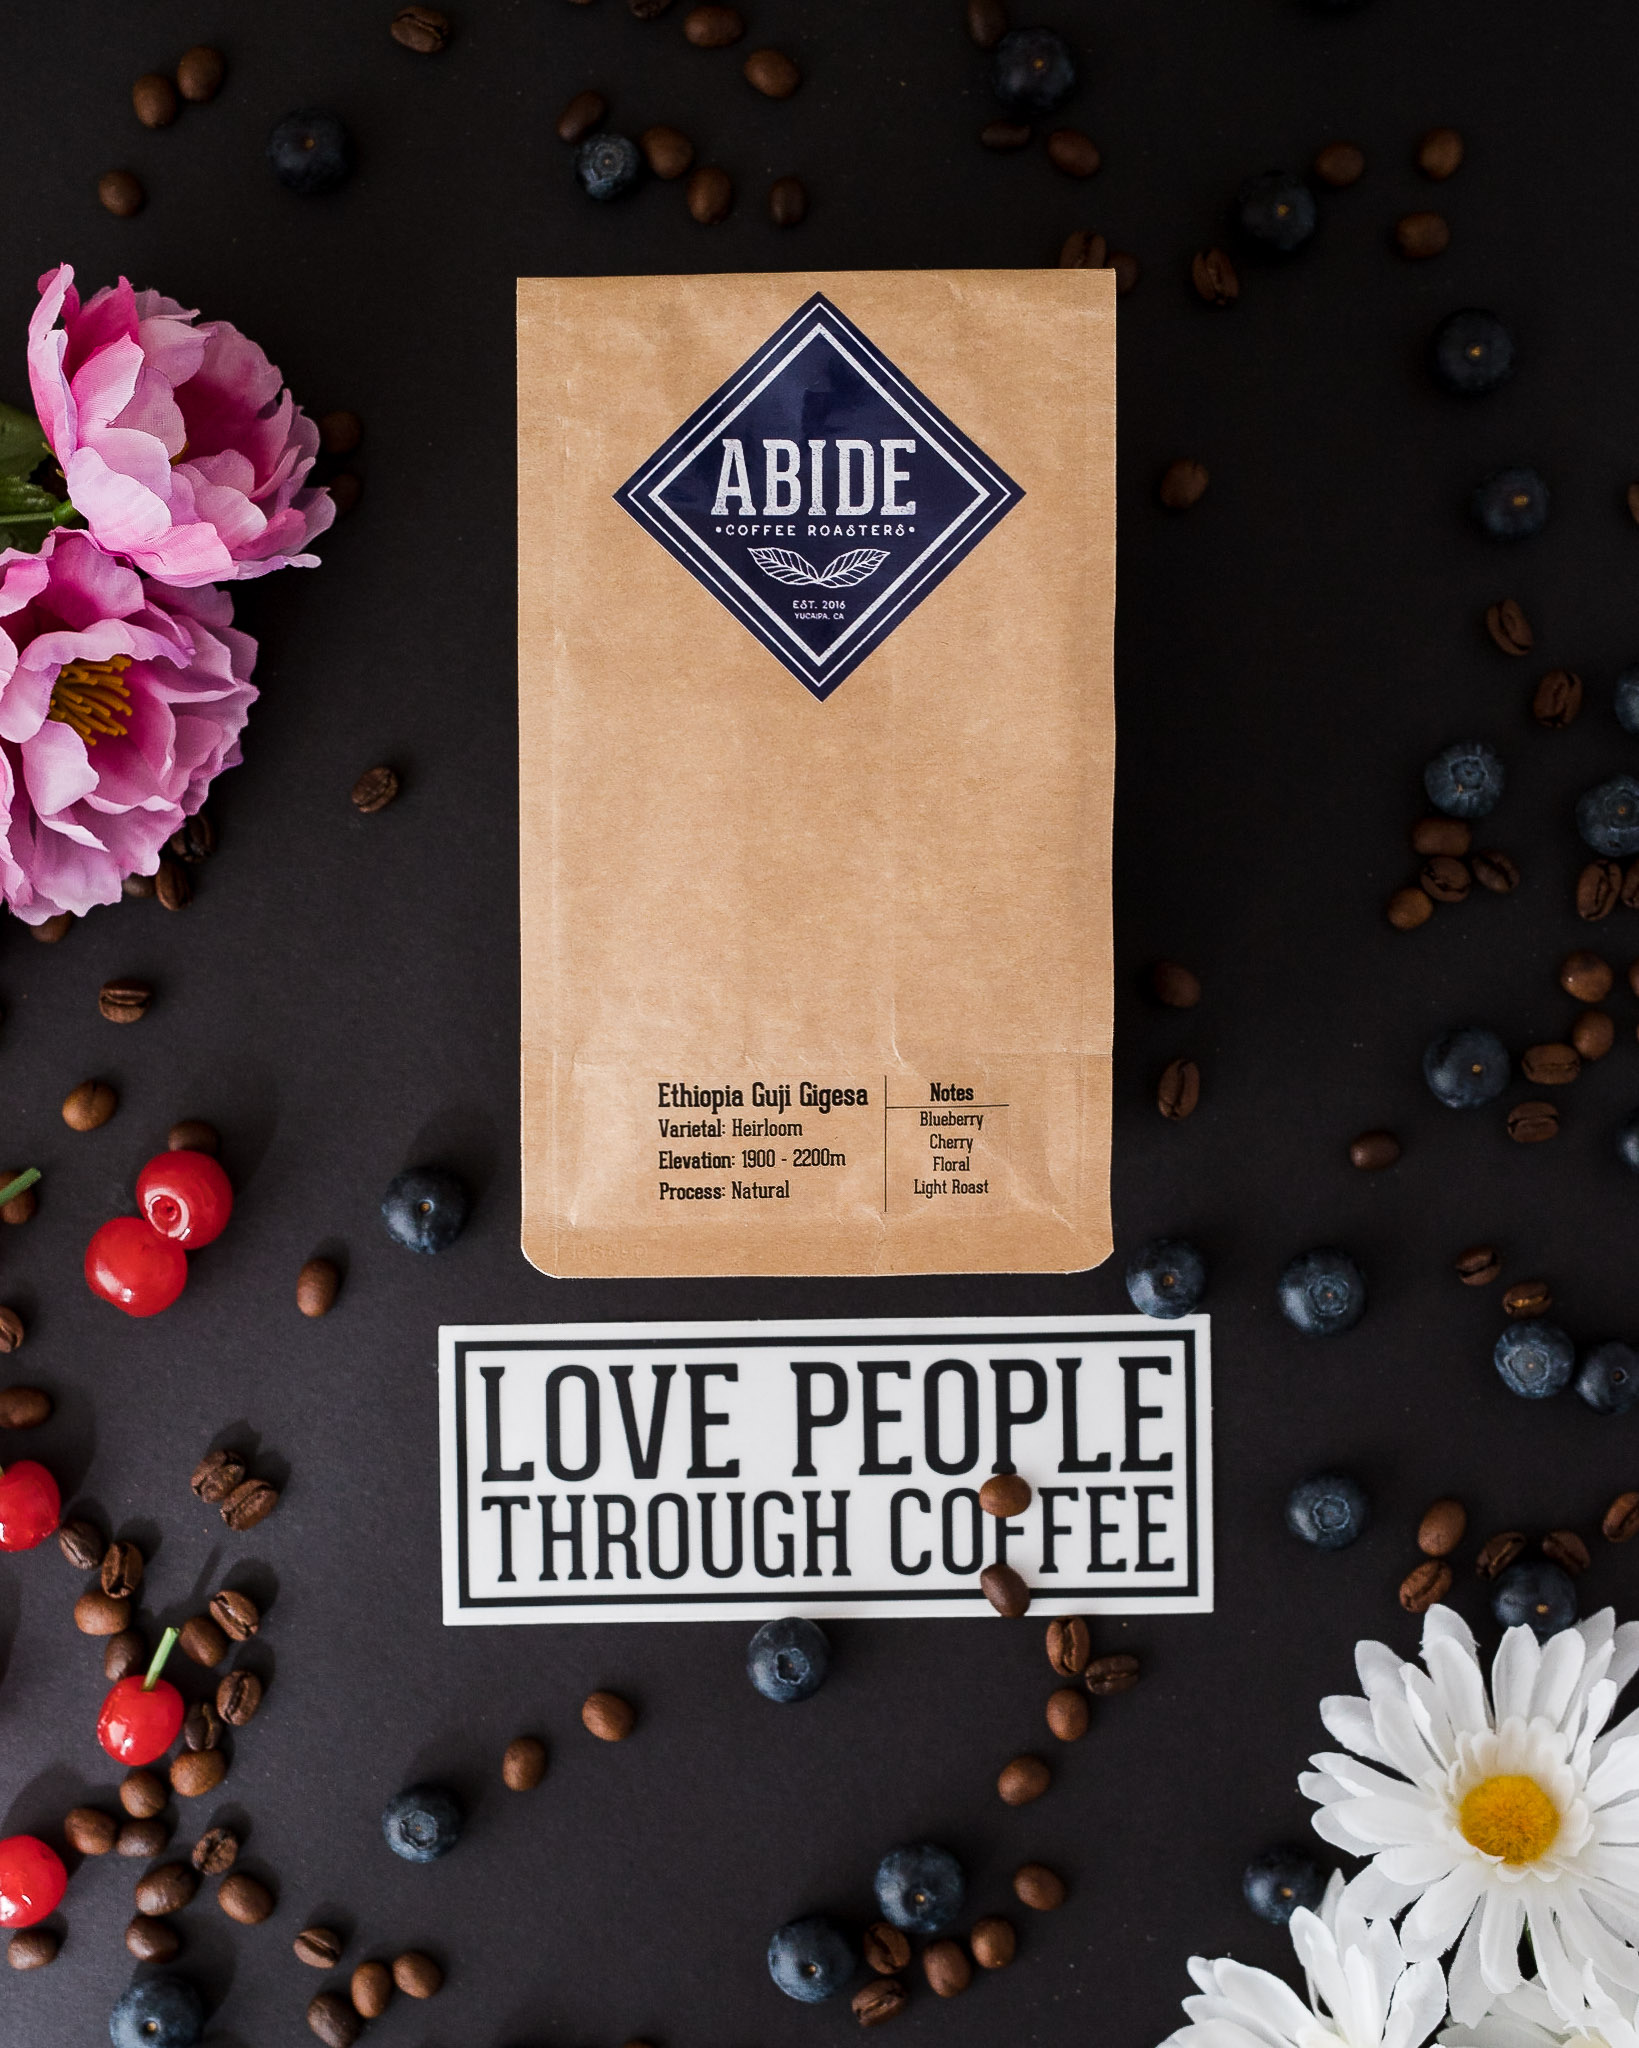 Abide Coffee Roasters Ethiopia Guji Gigesa Natural Heirloom